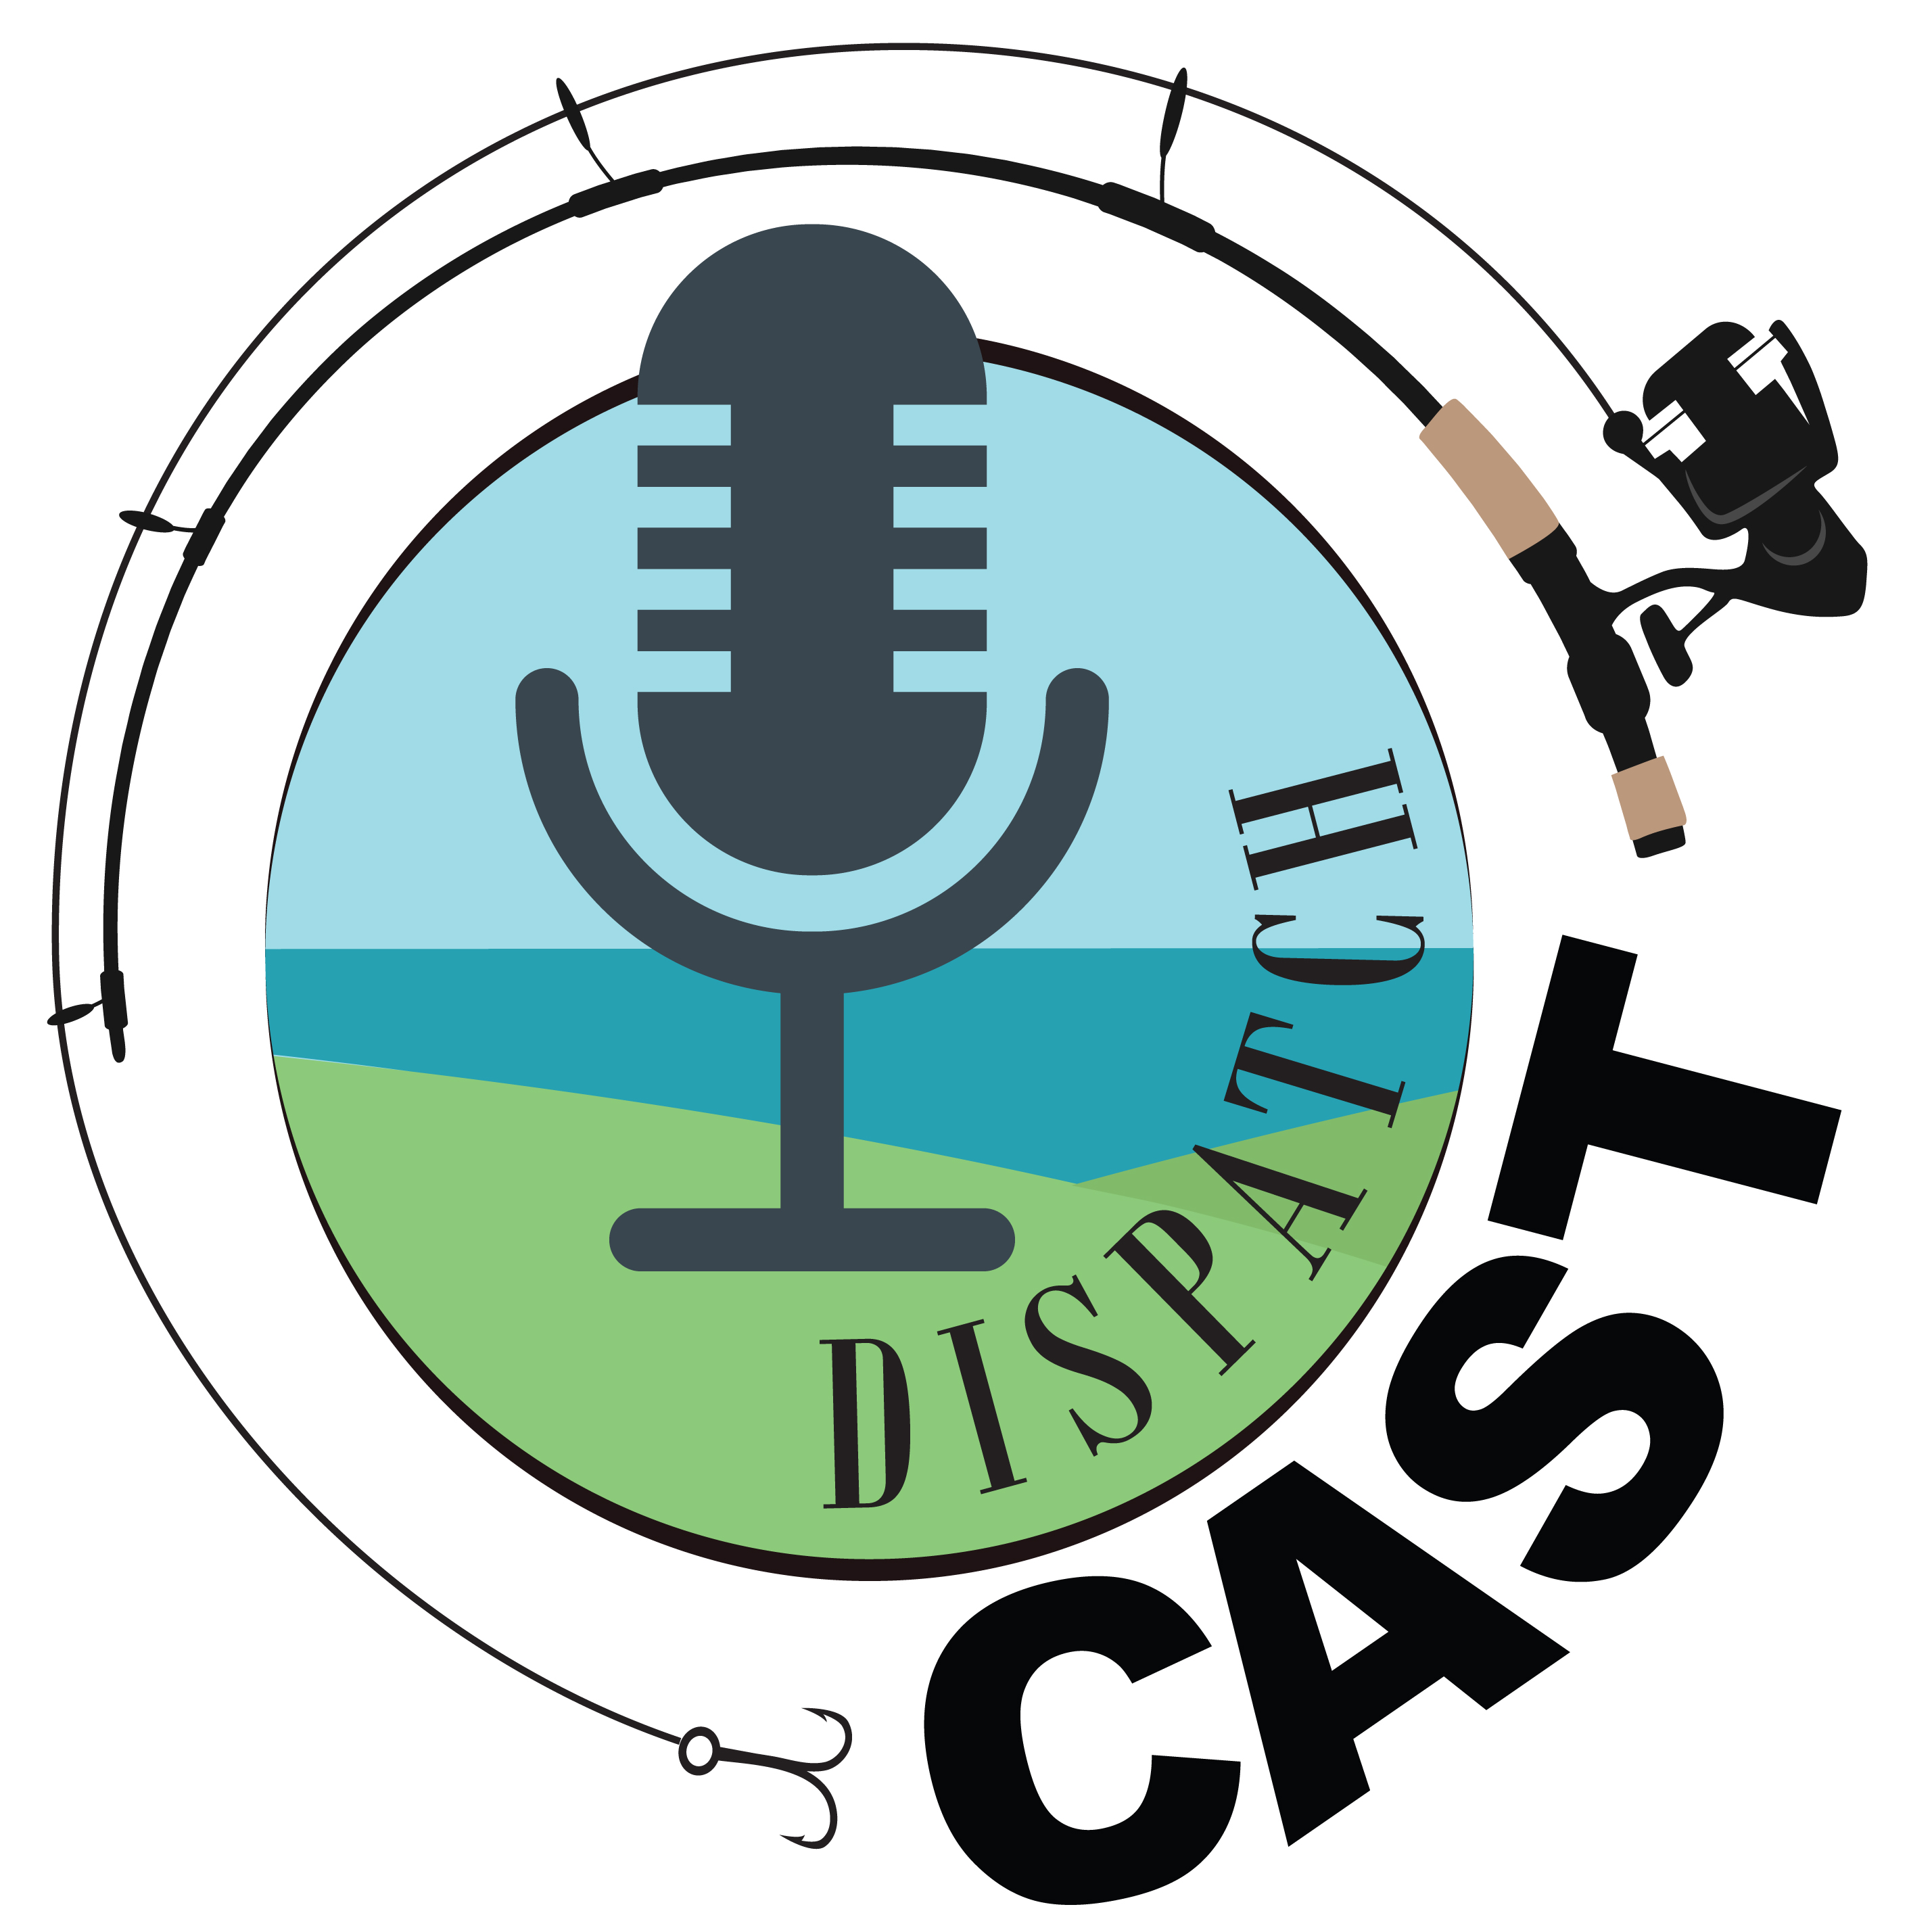 DispatchCast